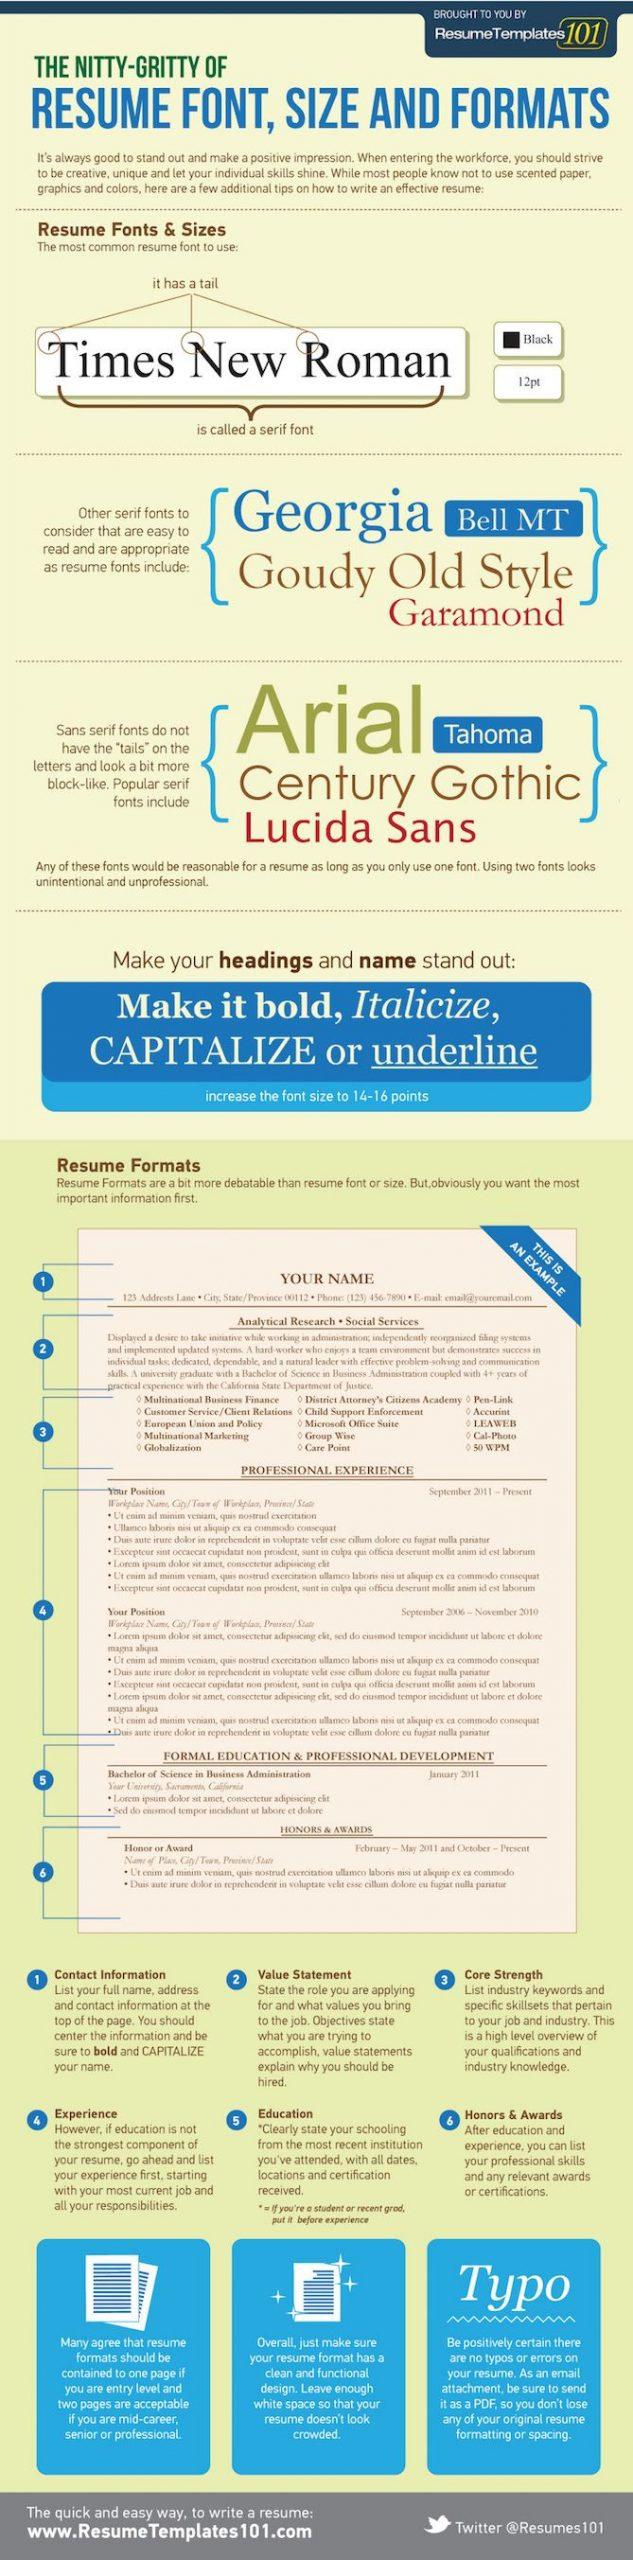 Meaning Of Resume In Job Application Of Resume format Tips You Need to Know In 2020 [sample formats Included]